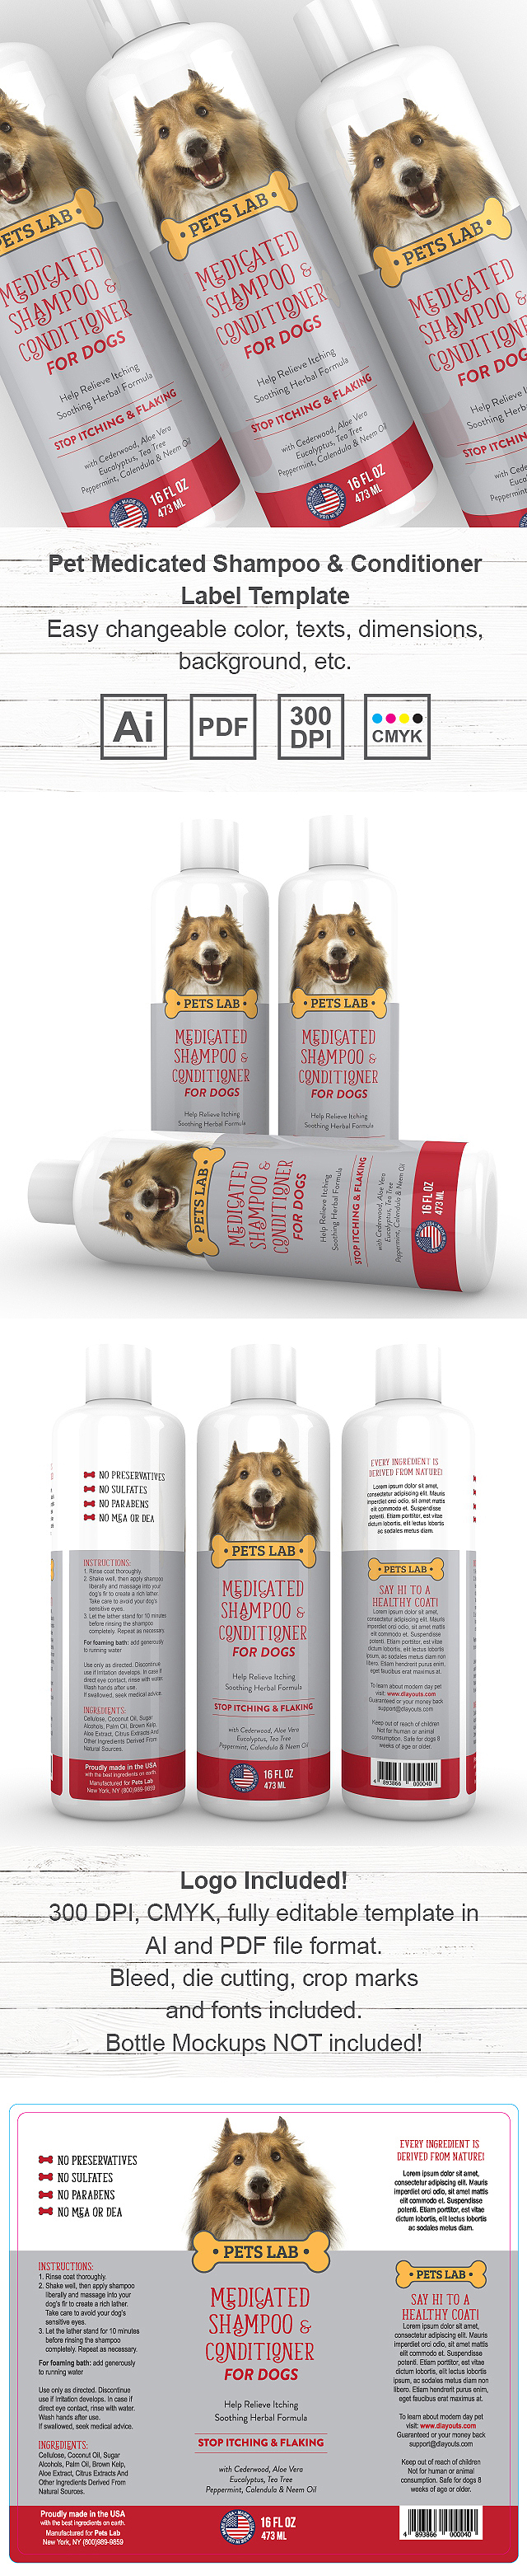 Pet Medicated Shampoo & Conditioner Label Template